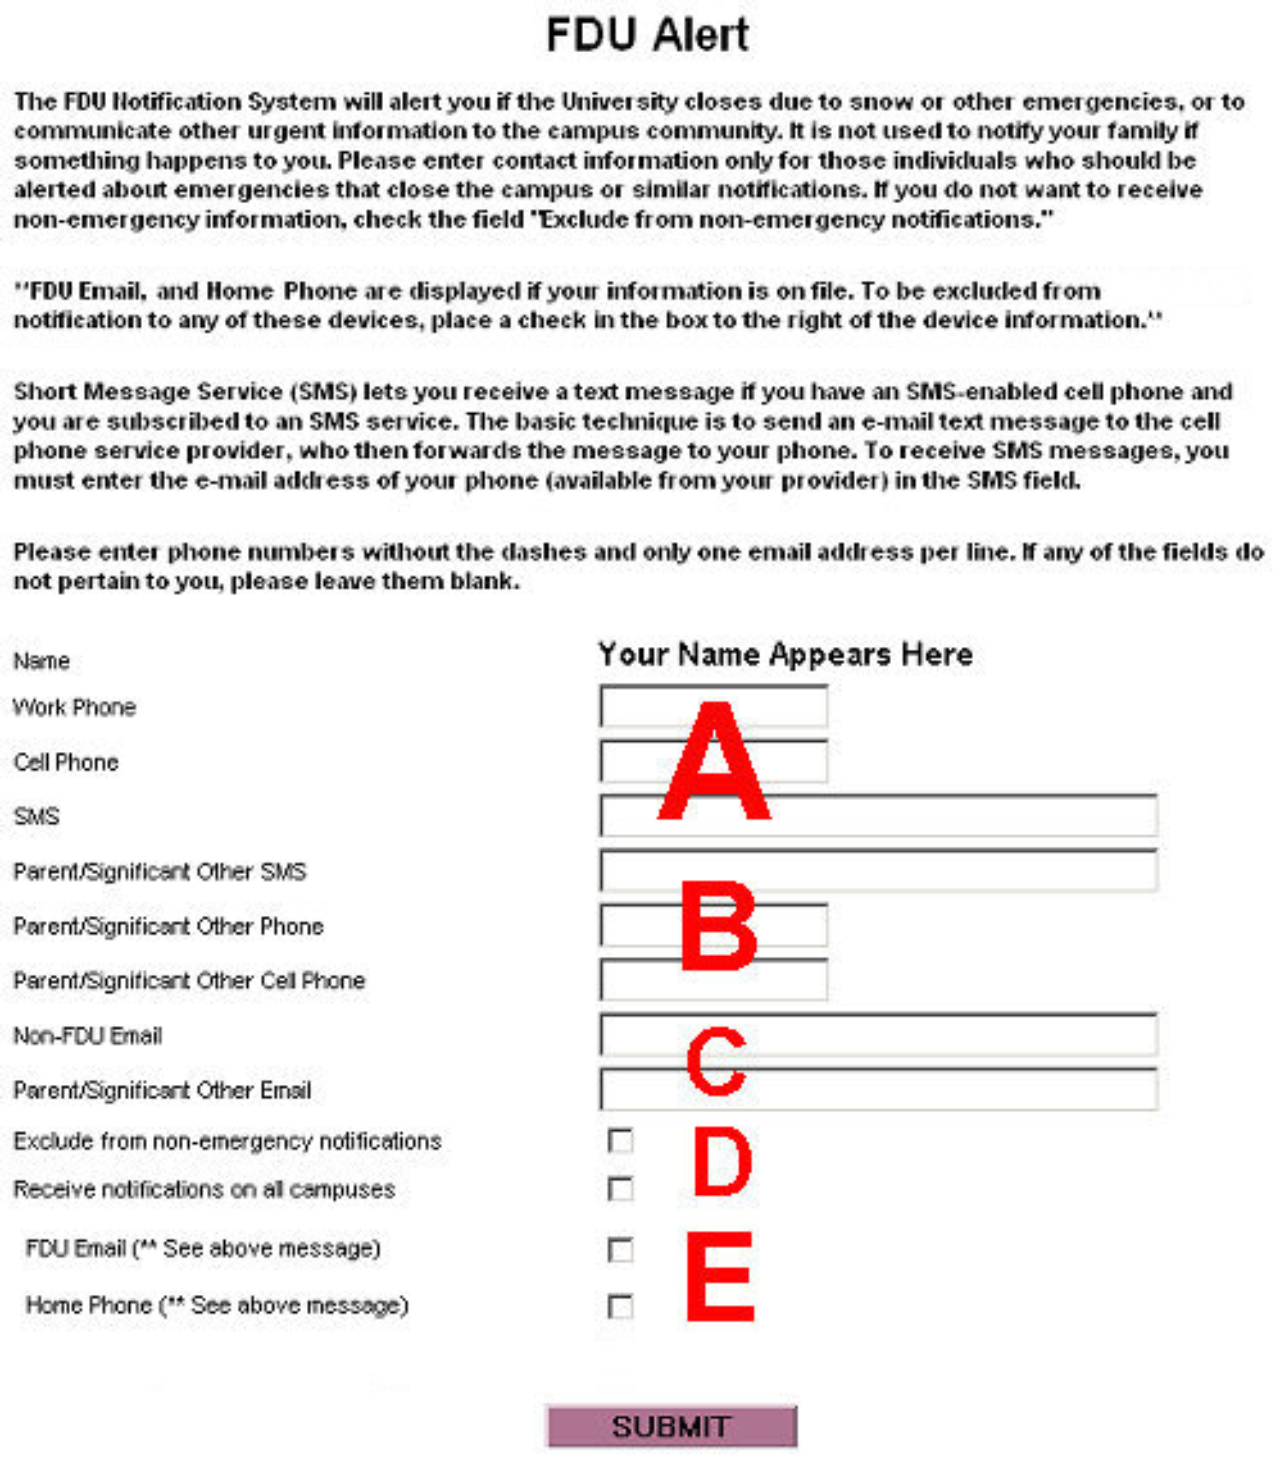 FDU notification system contact form